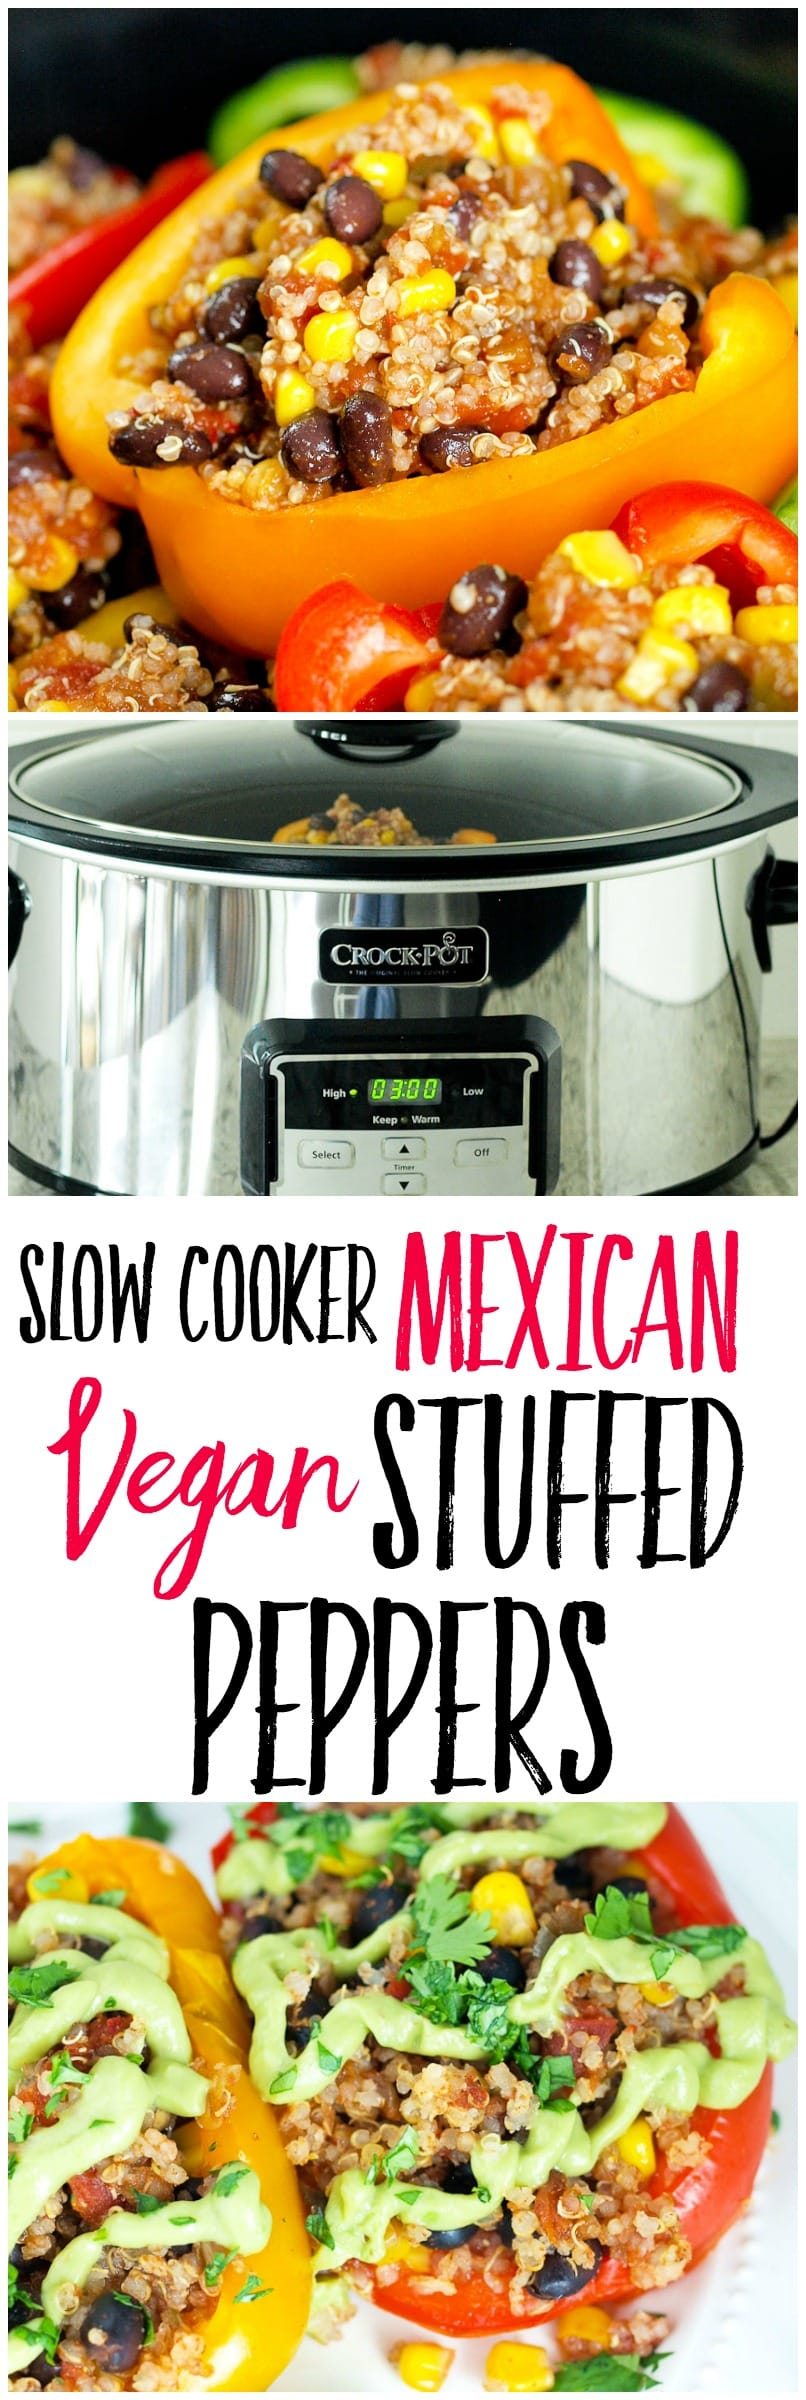 This slow cooker Vegan Mexican Stuffed Peppers recipe makes a healthy weeknight dinner idea that your whole family will love! Use your Crock-Pot® to makes this vegan, gluten-free, DELICIOUS dinner!